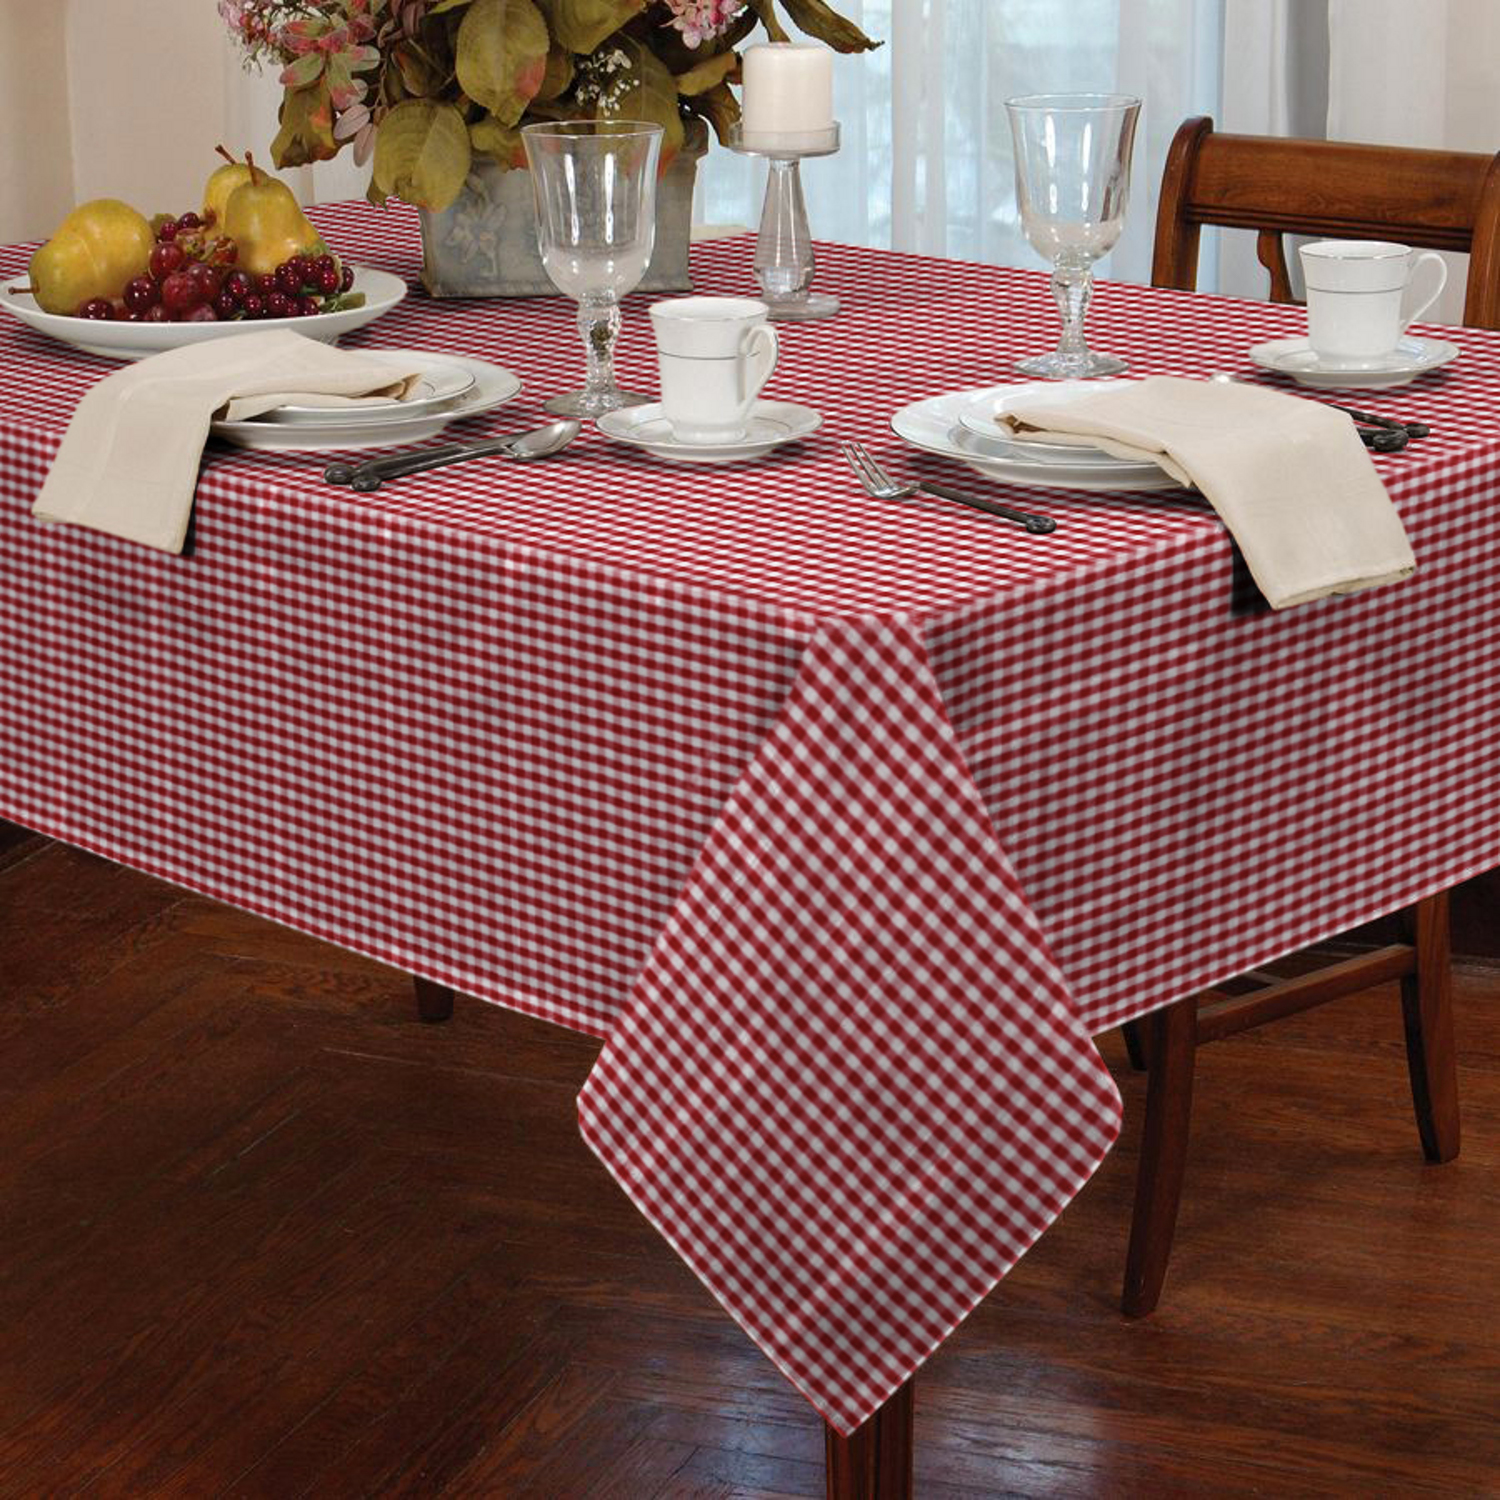 Garden Picnic Gingham Check Tablecloth Dining Room Table ...